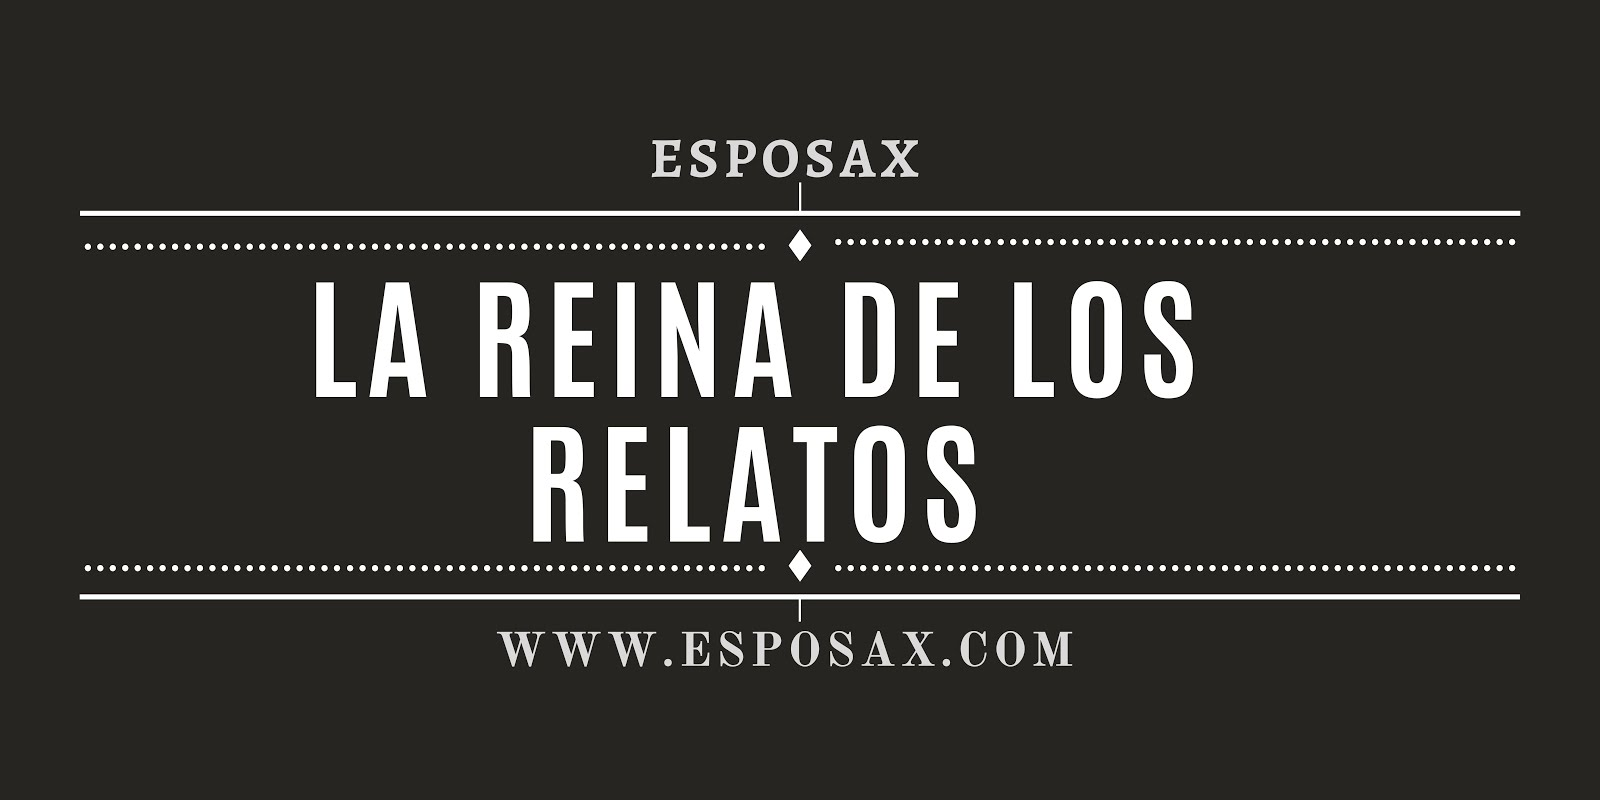 Relatos Eroticos EsposaX